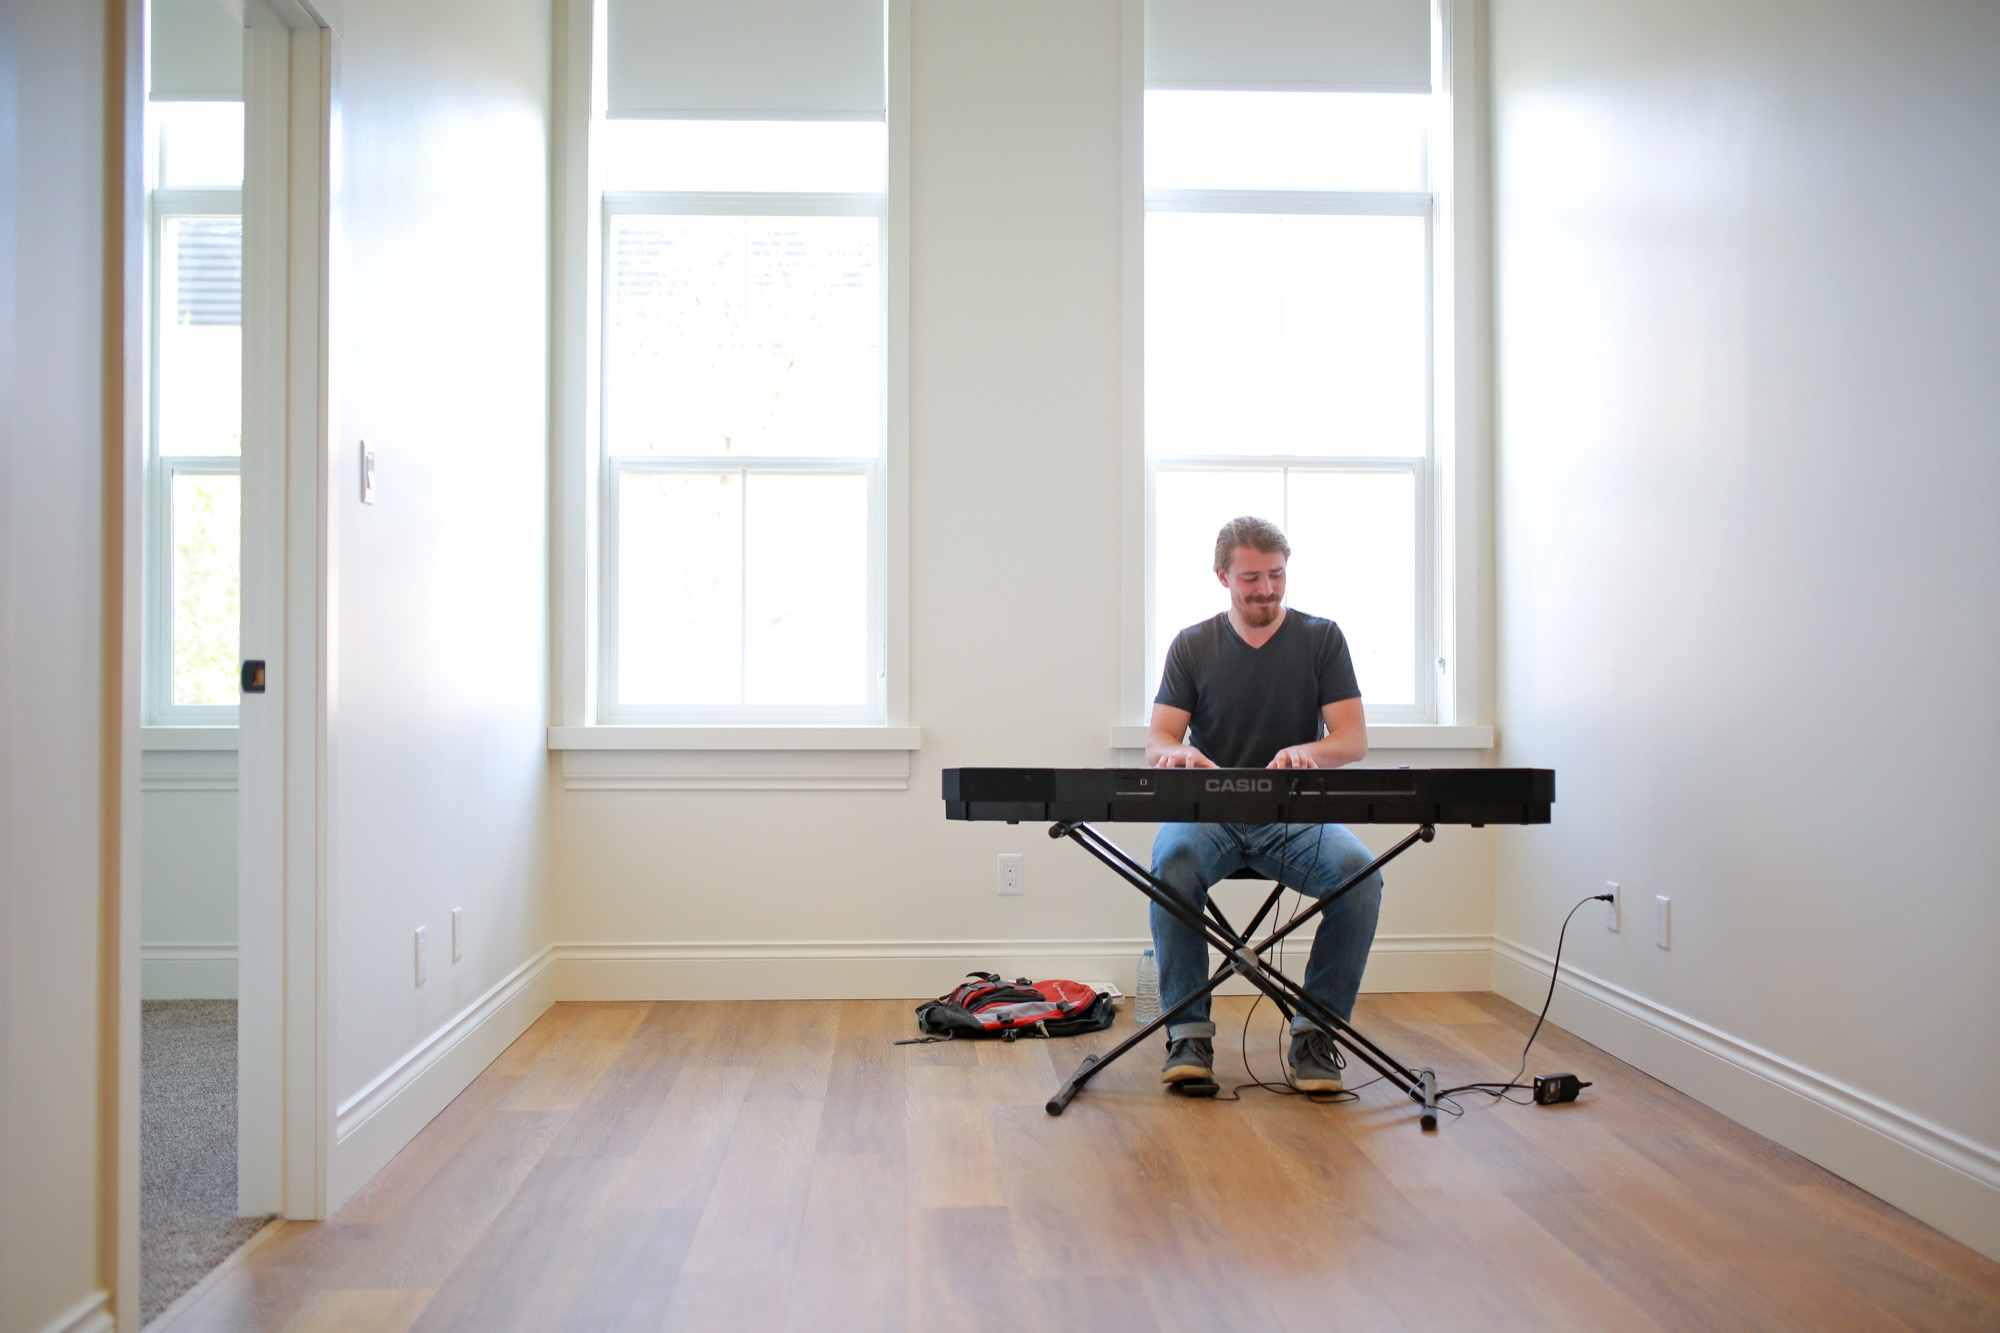 David Naylor with Brandon University's School of Music performs for guests during an open house for the Prairie Lofts apartments on the 800 block of Rosser Avenue on Thursday evening.